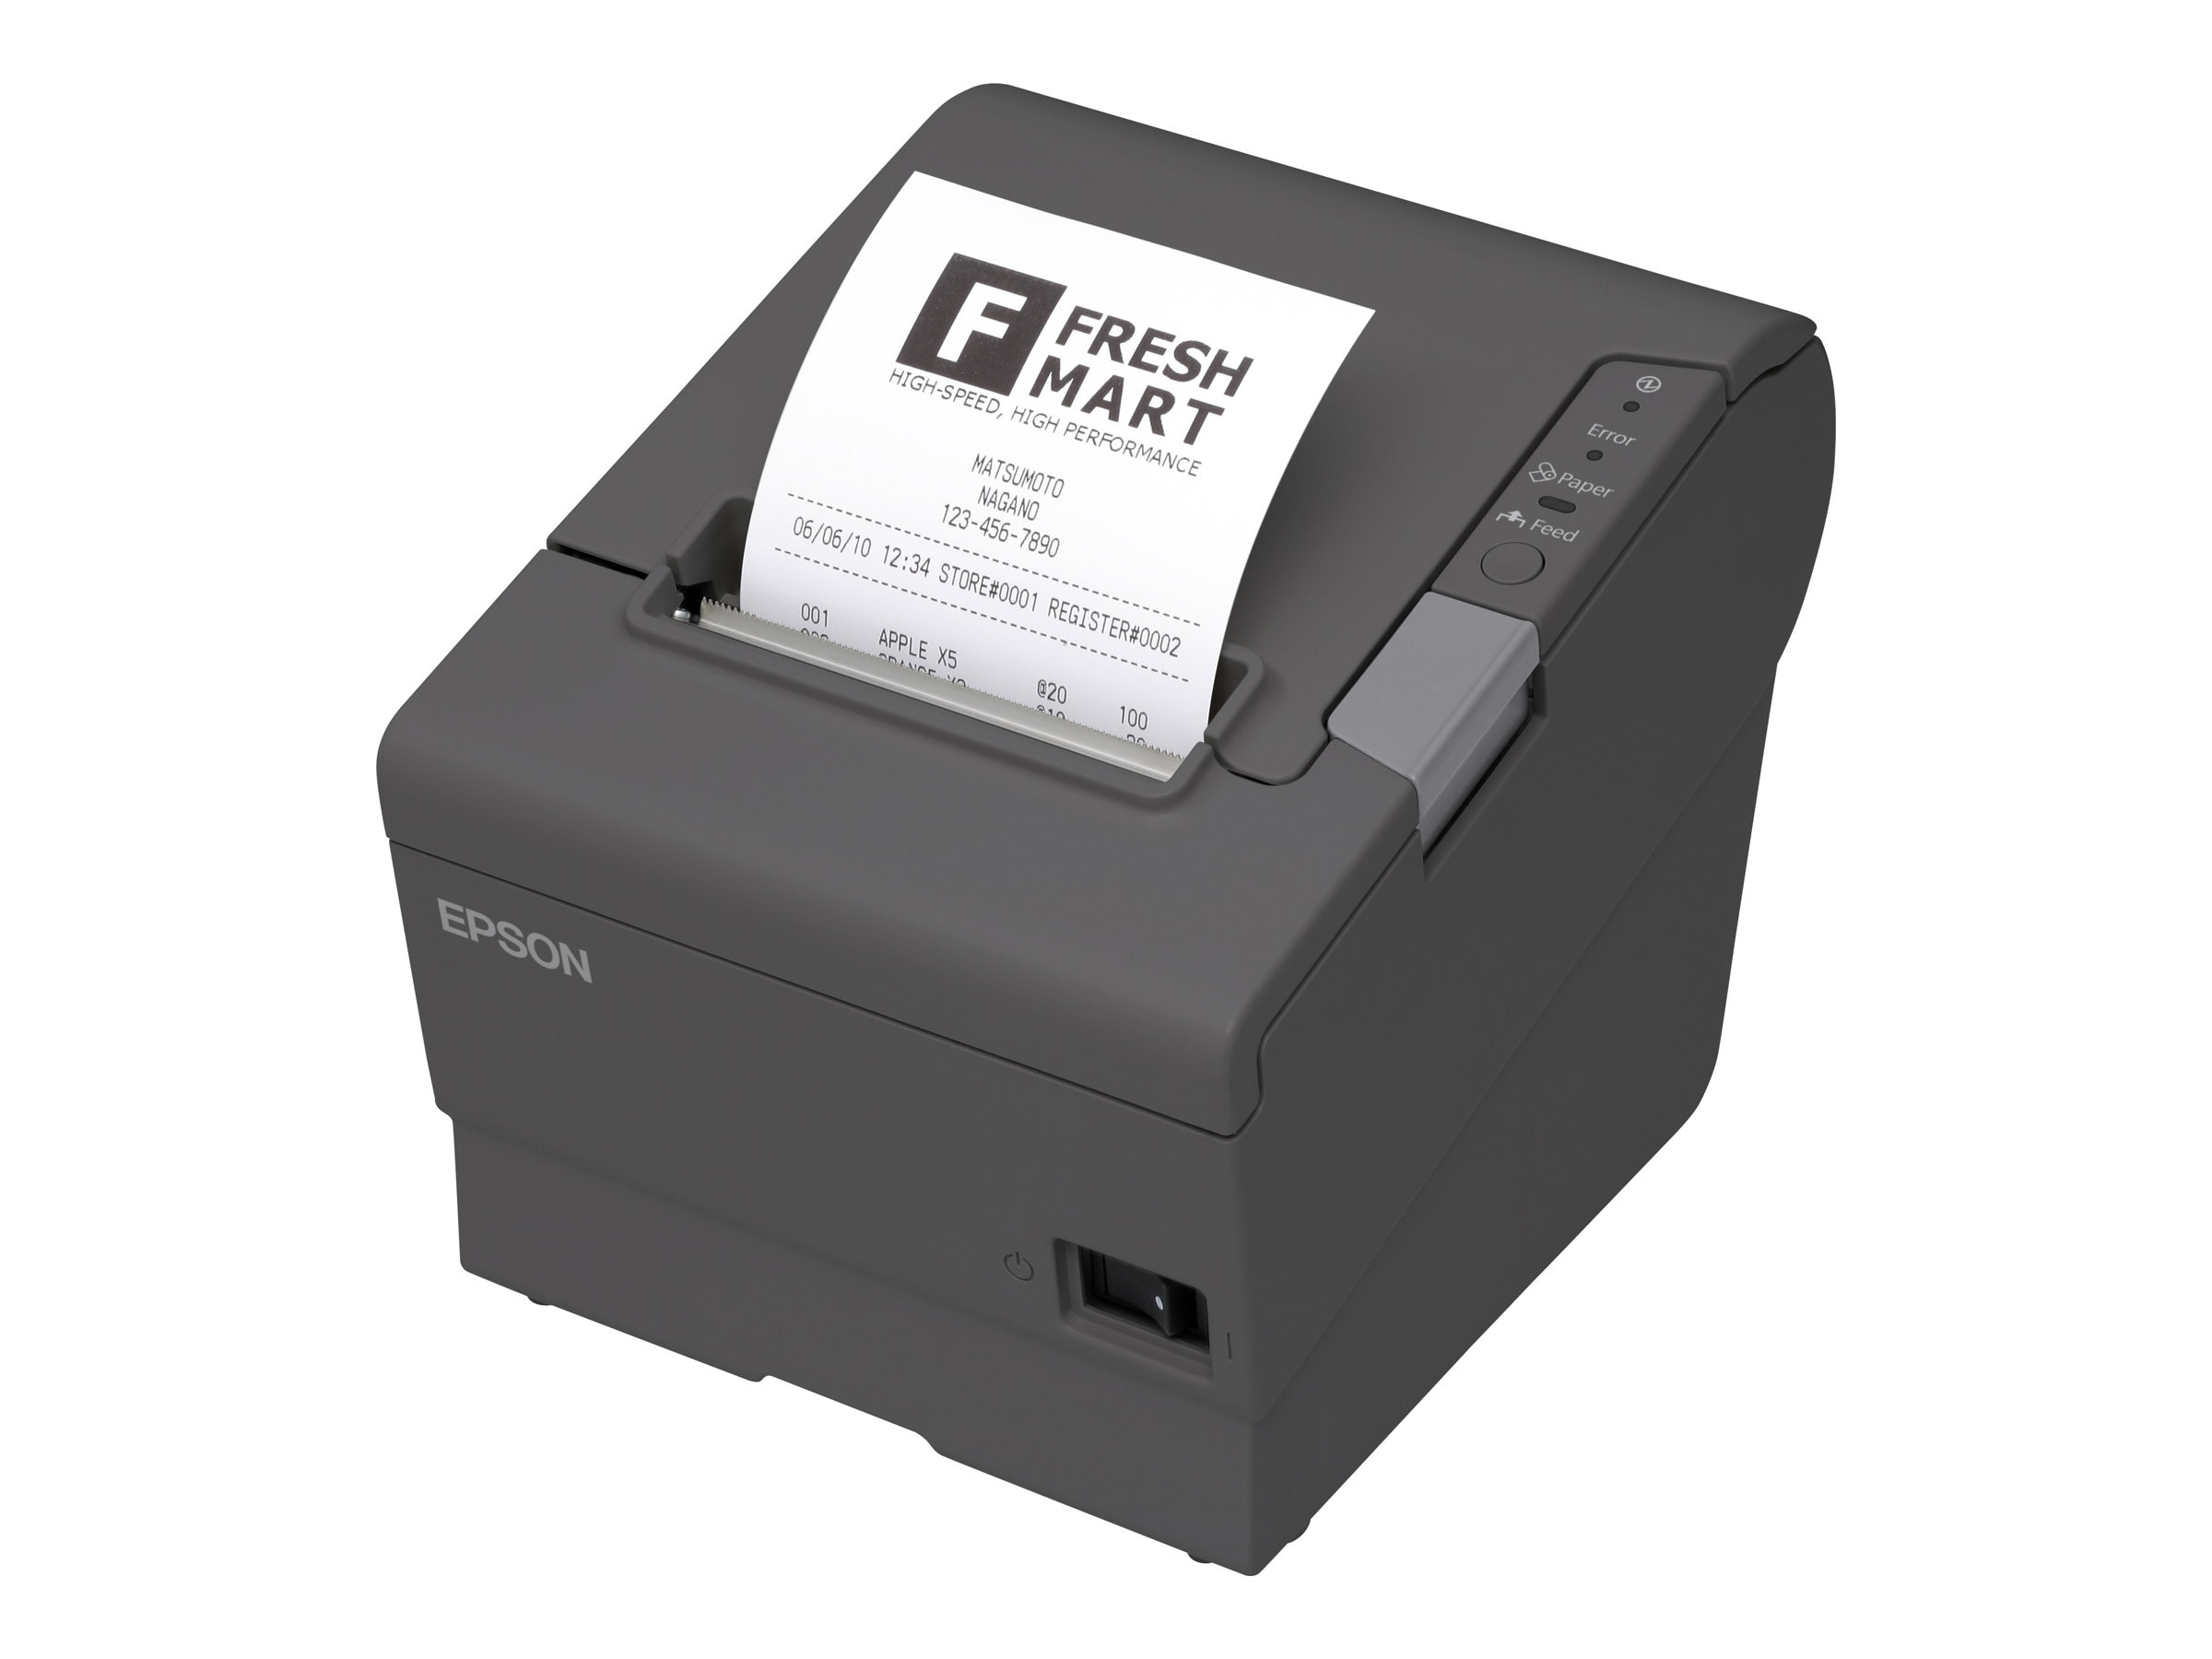 Epson TM-T88V-330 Ethernet USB Printer w  Edge & Power, C31CA85330, 13628737, Printers - POS Receipt